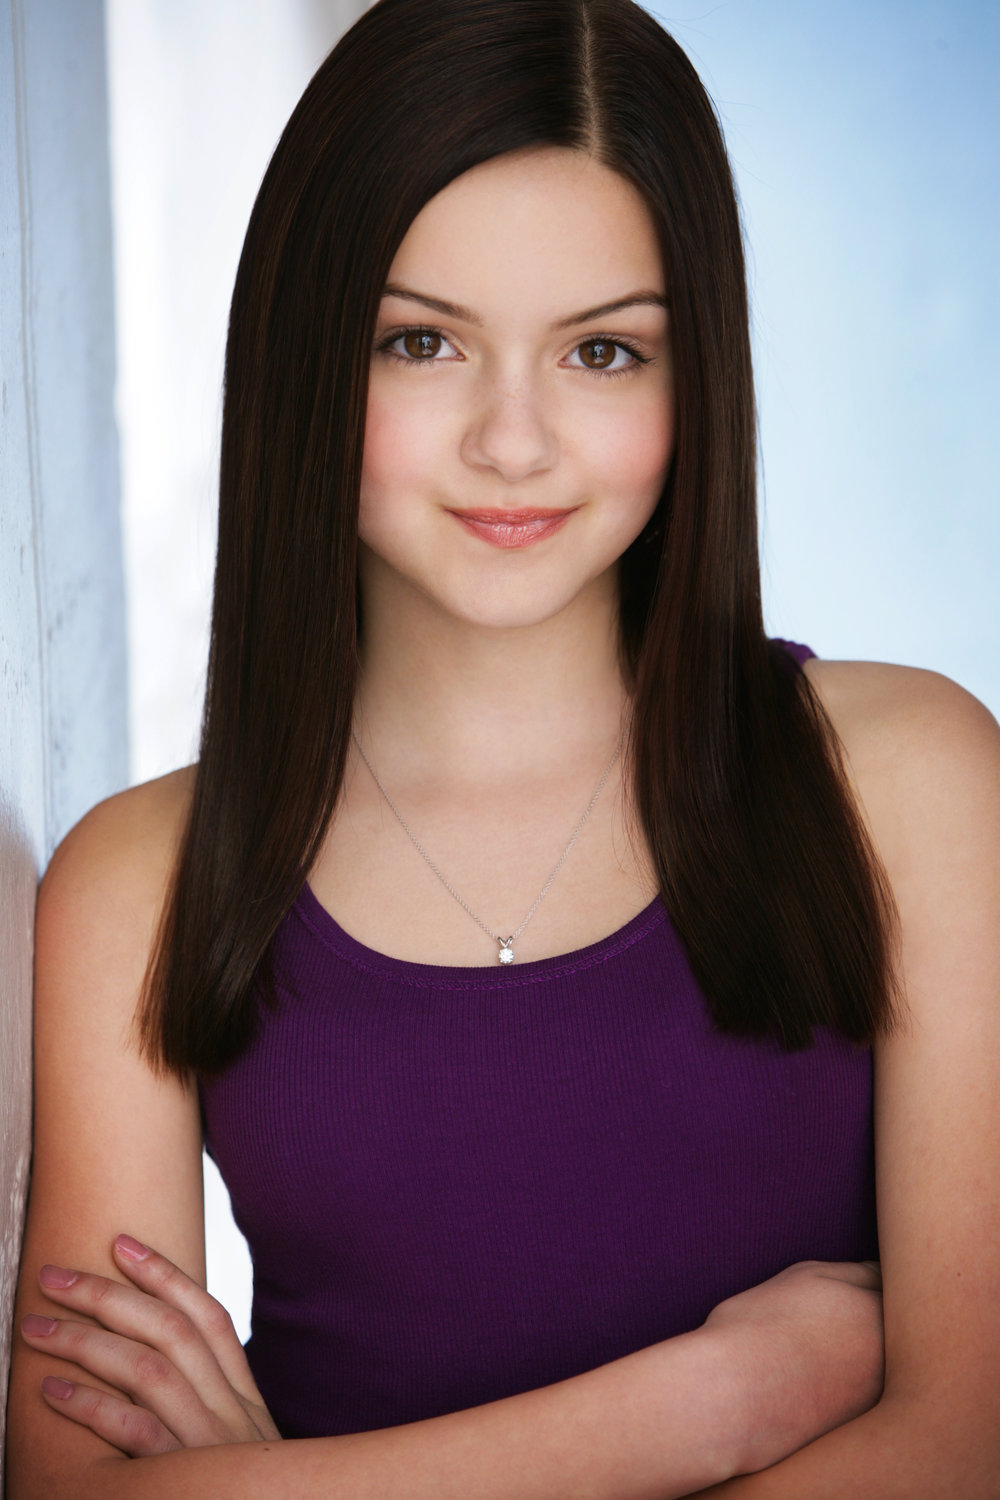 Ariel Winter headshot by Shandon Photography